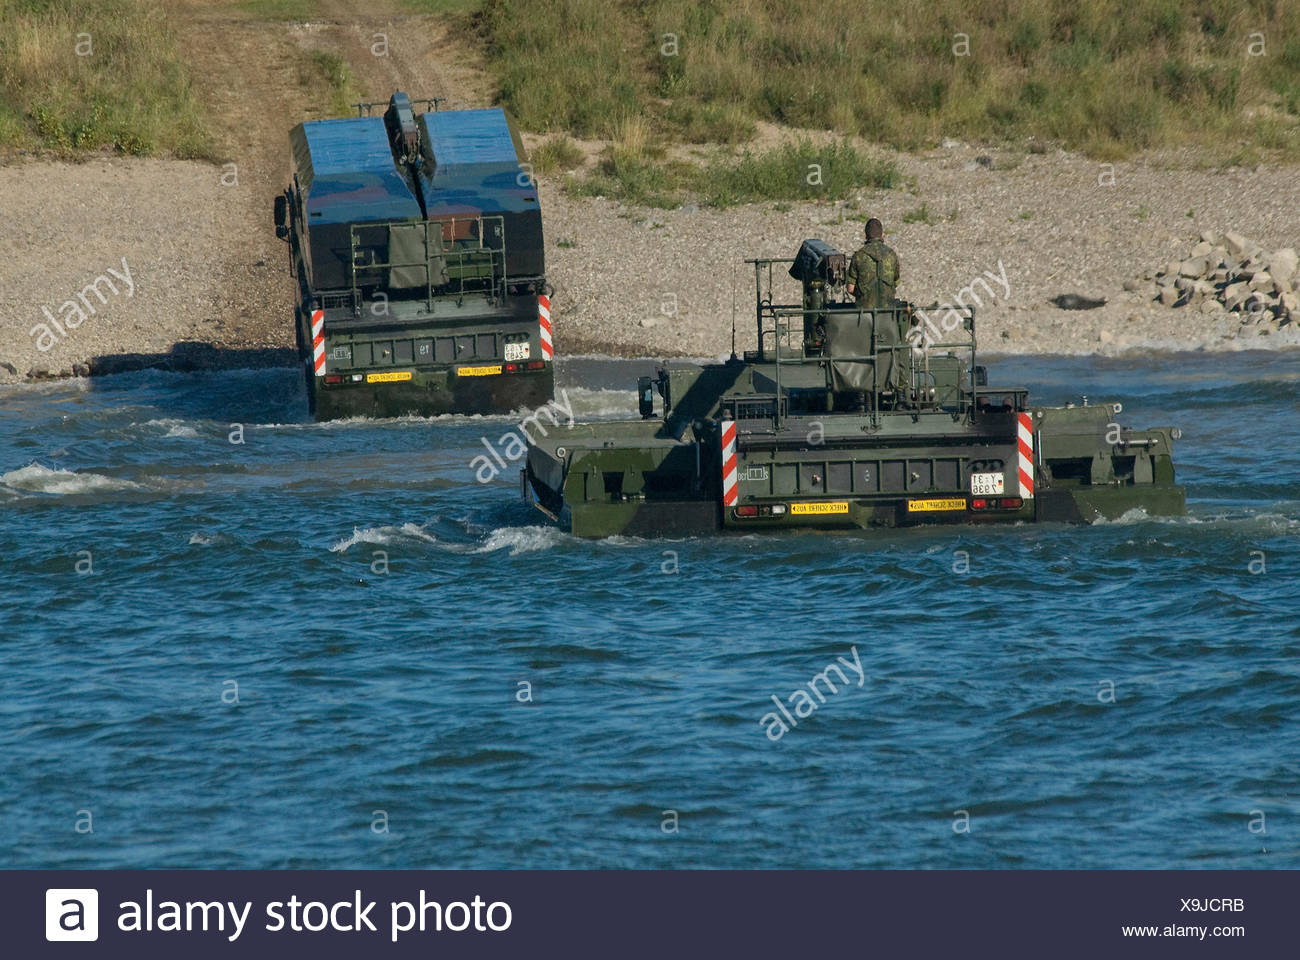 Two M3 amphibious vehicles of the Bundeswehr, federal army, emerging from the Rhine, one with folded wings - Stock Image